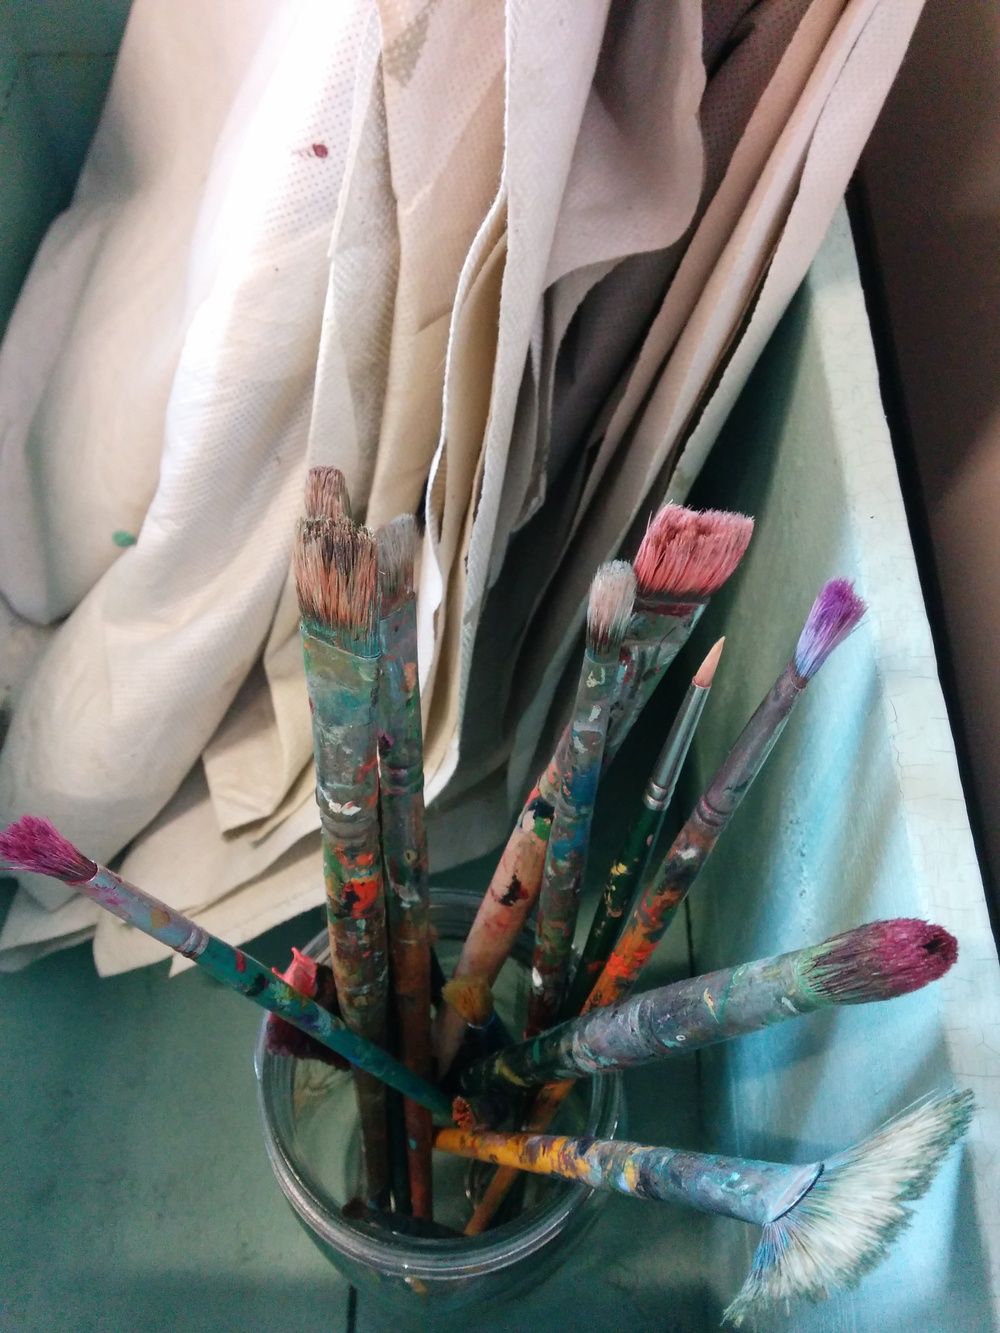 Julie Jacobson's brushes